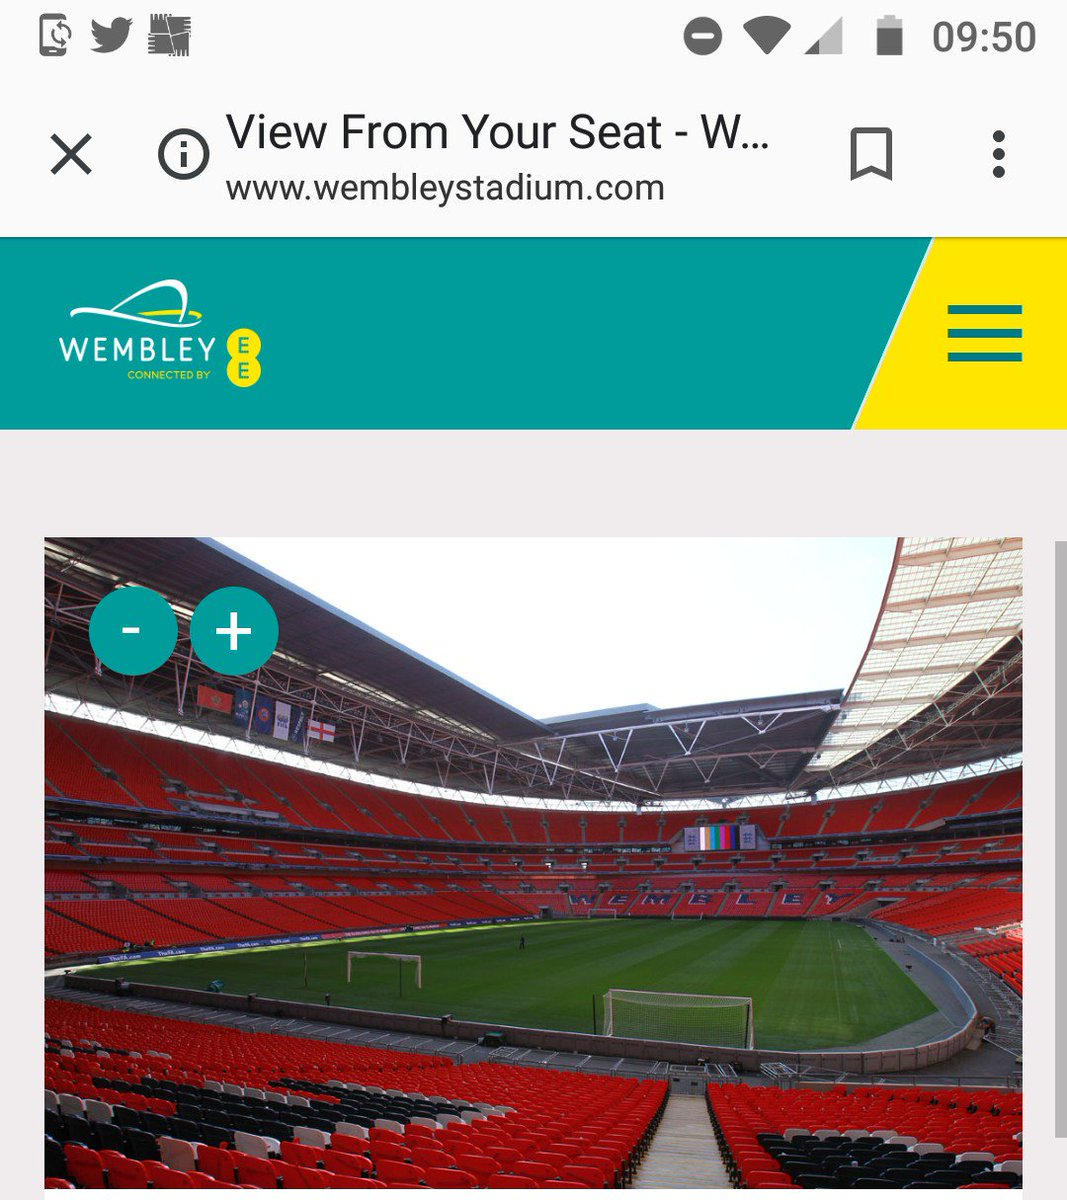 Finally made it to #wembley semi final tickets purchased. The view is beautiful  #wwfc #FACup